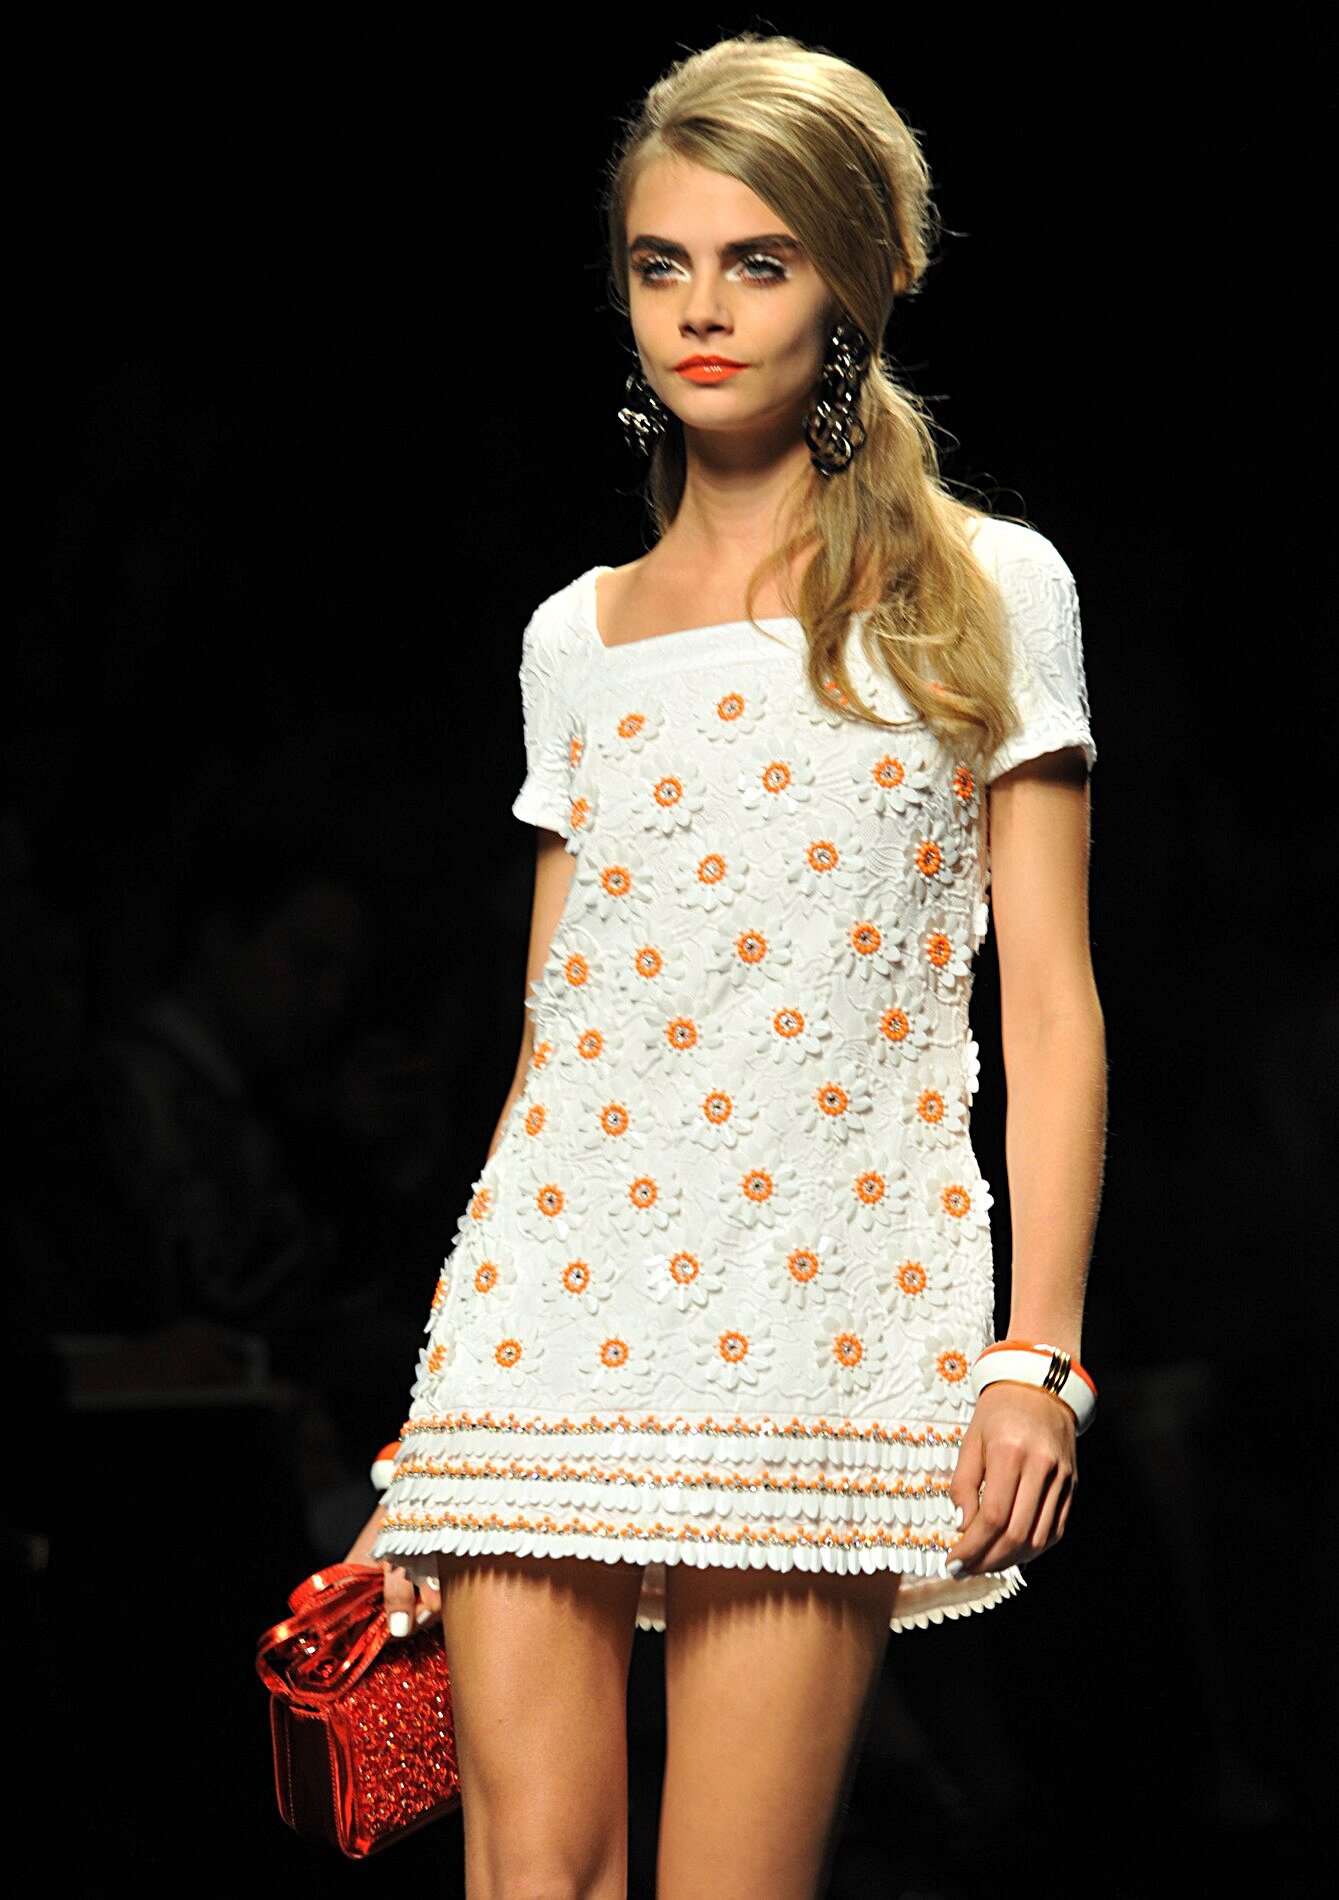 Moschino Spring 2013 Flowers Dress